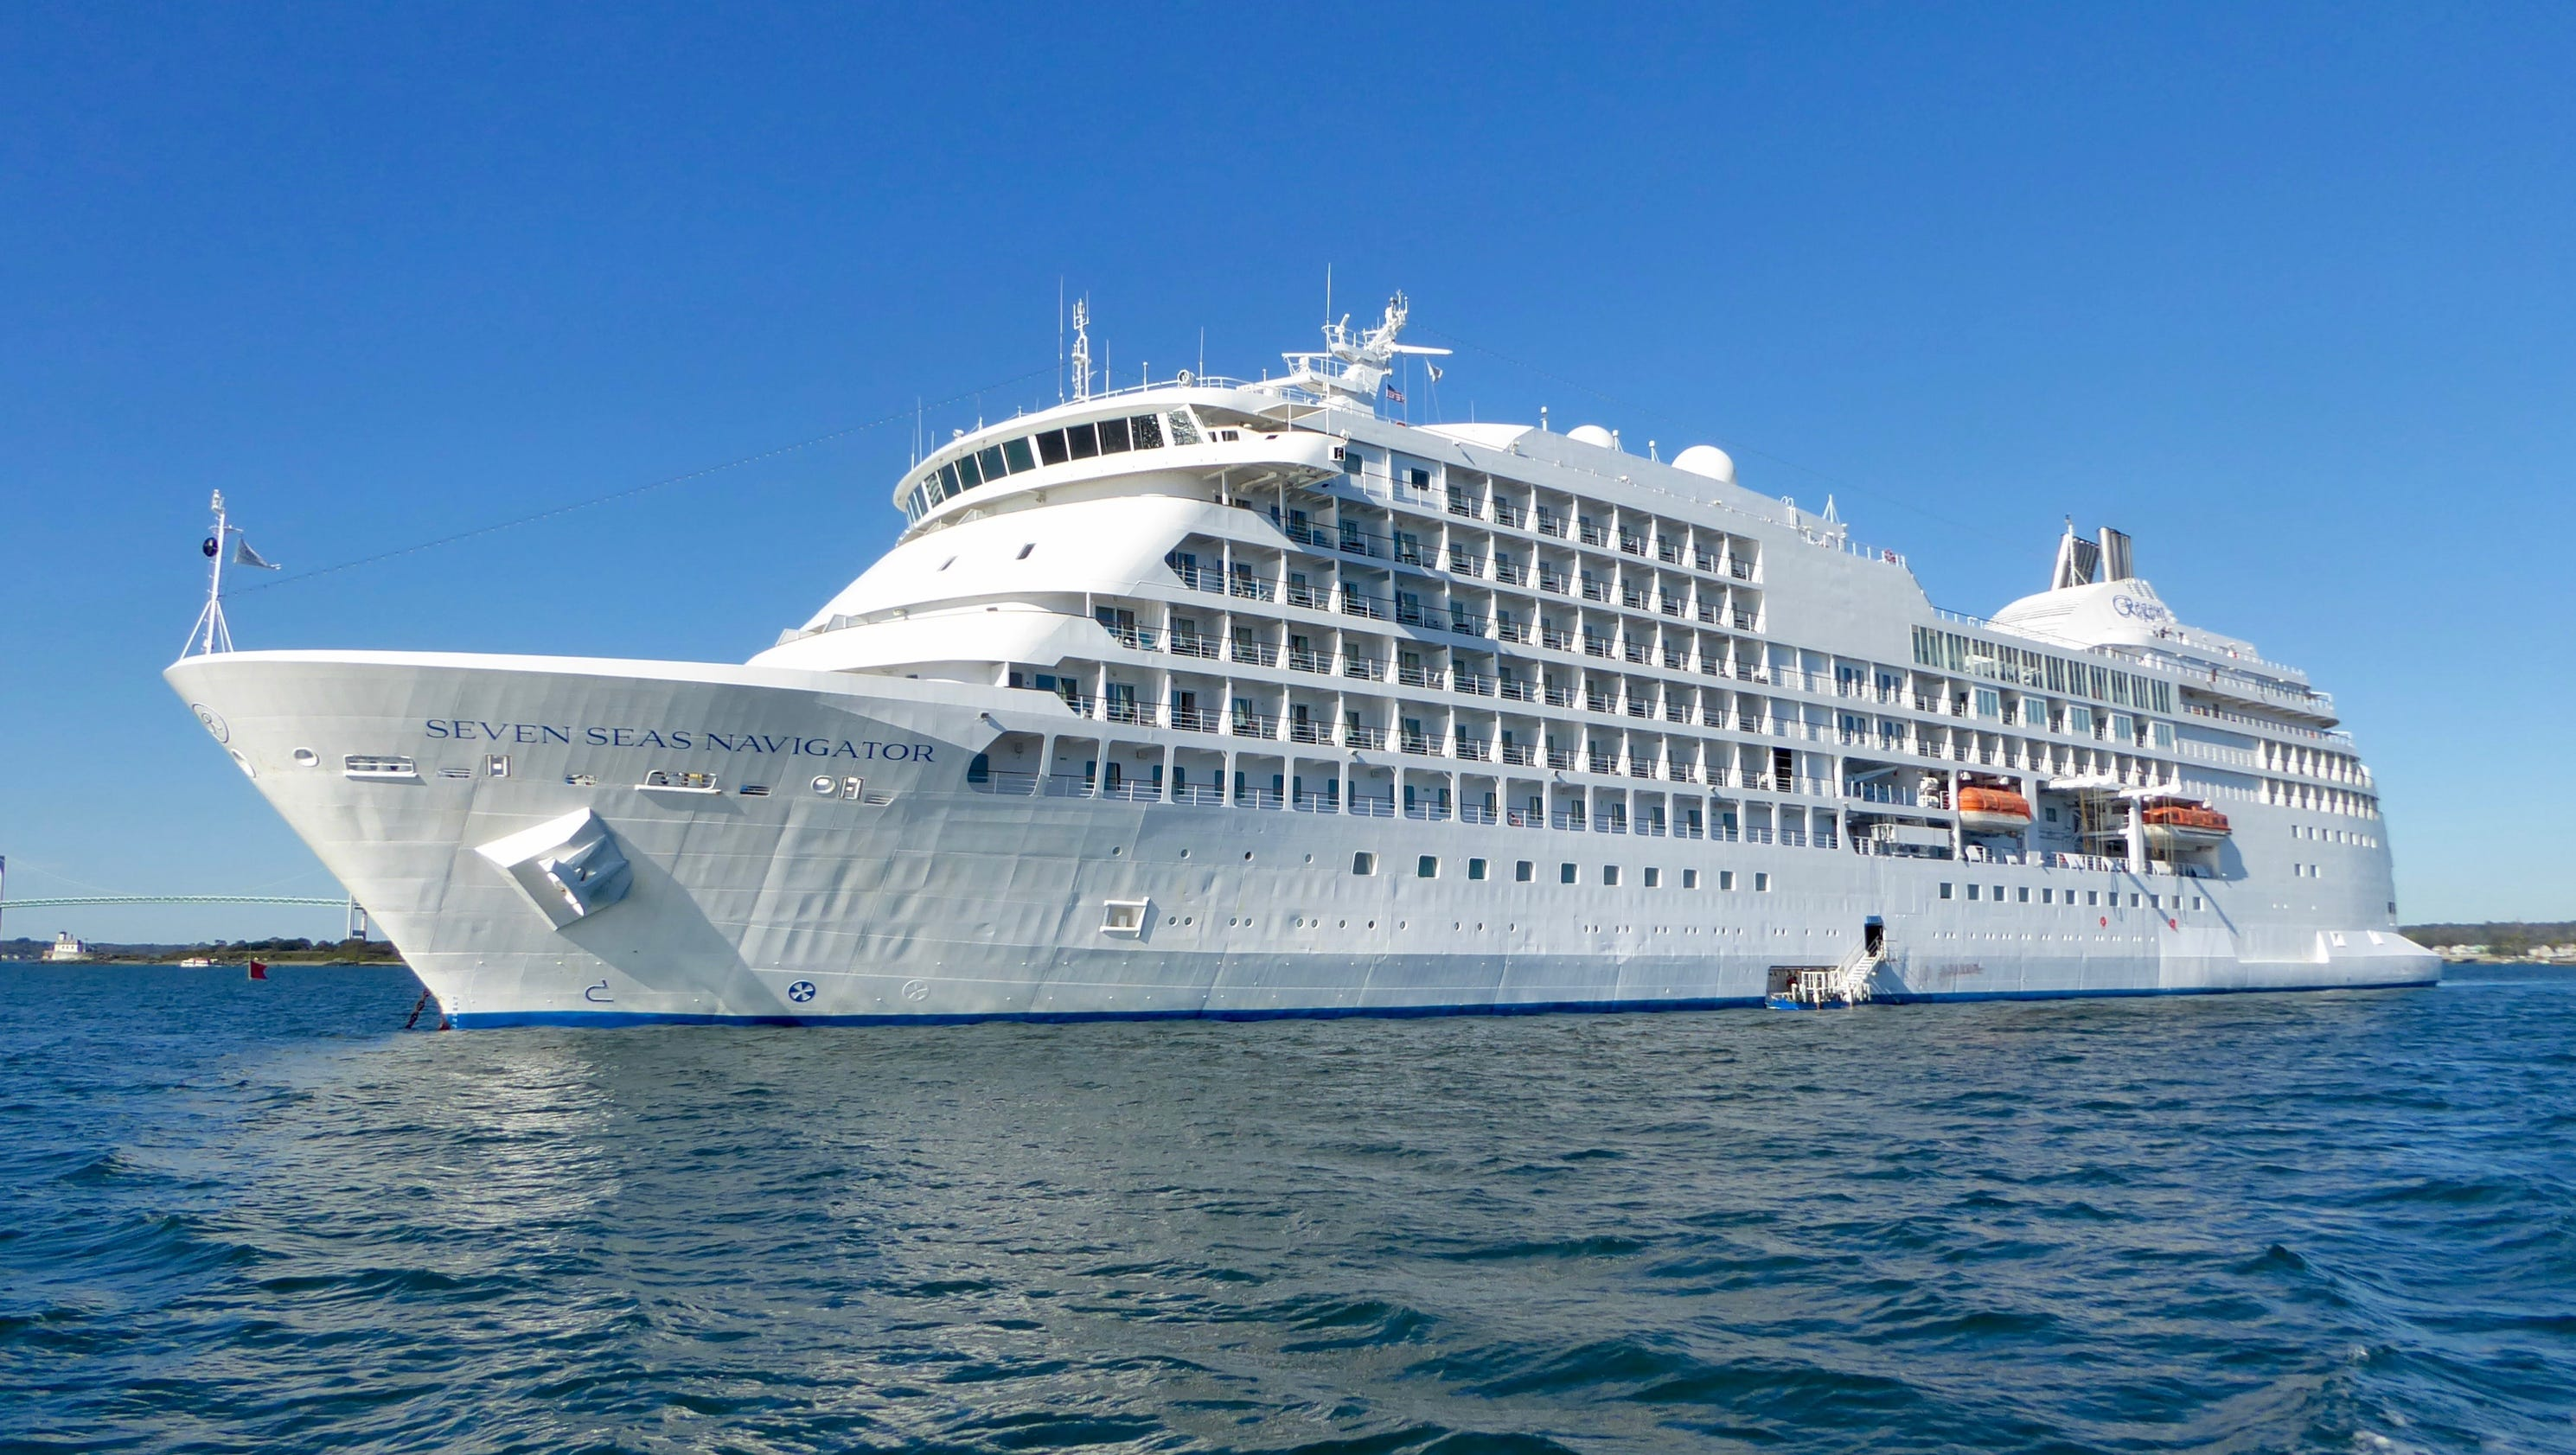 Cruise Ship Tours: Regent Seven Seas Cruises' Seven Seas